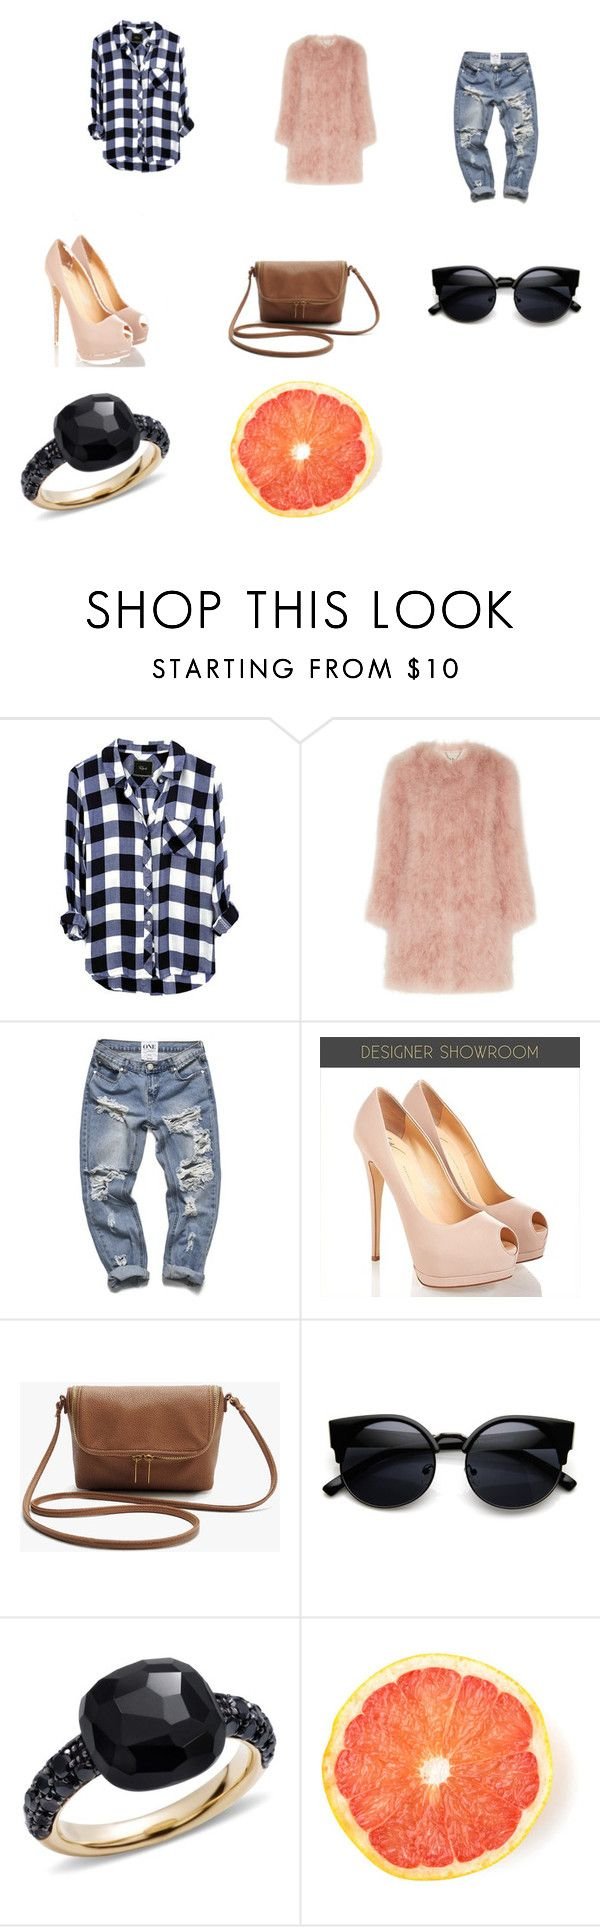 """""""Sassy"""" by sarah-blevins on Polyvore featuring Topshop Unique and Pomellato"""